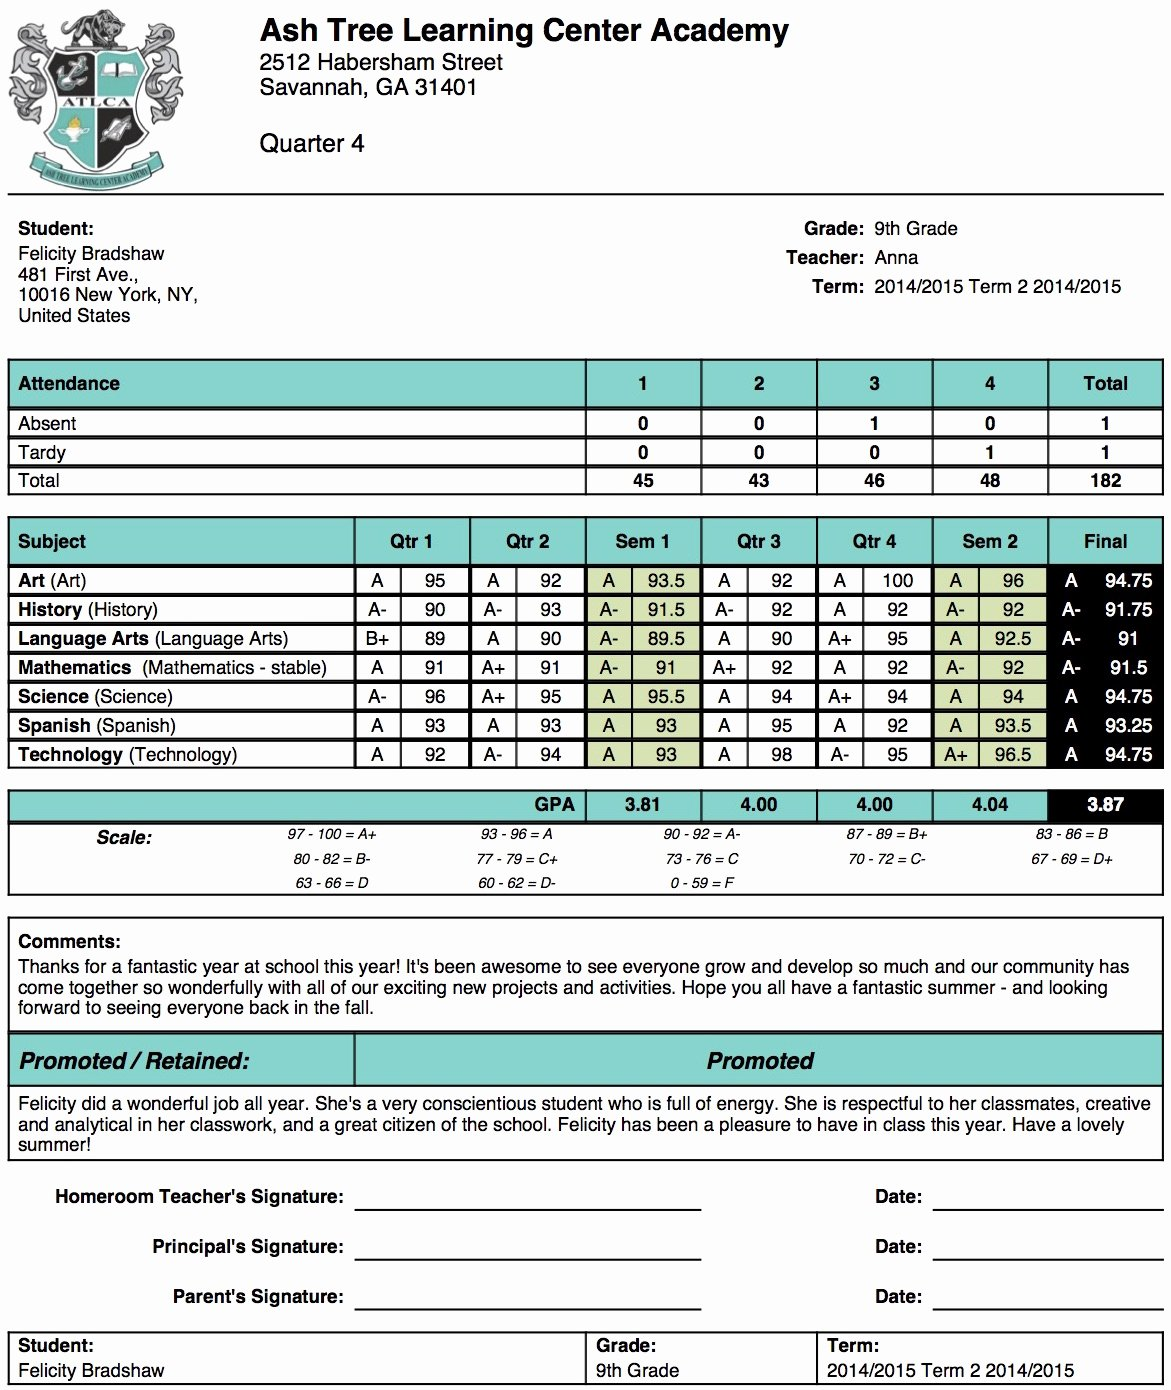 Ash Tree Learning Center Academy Report Card Template